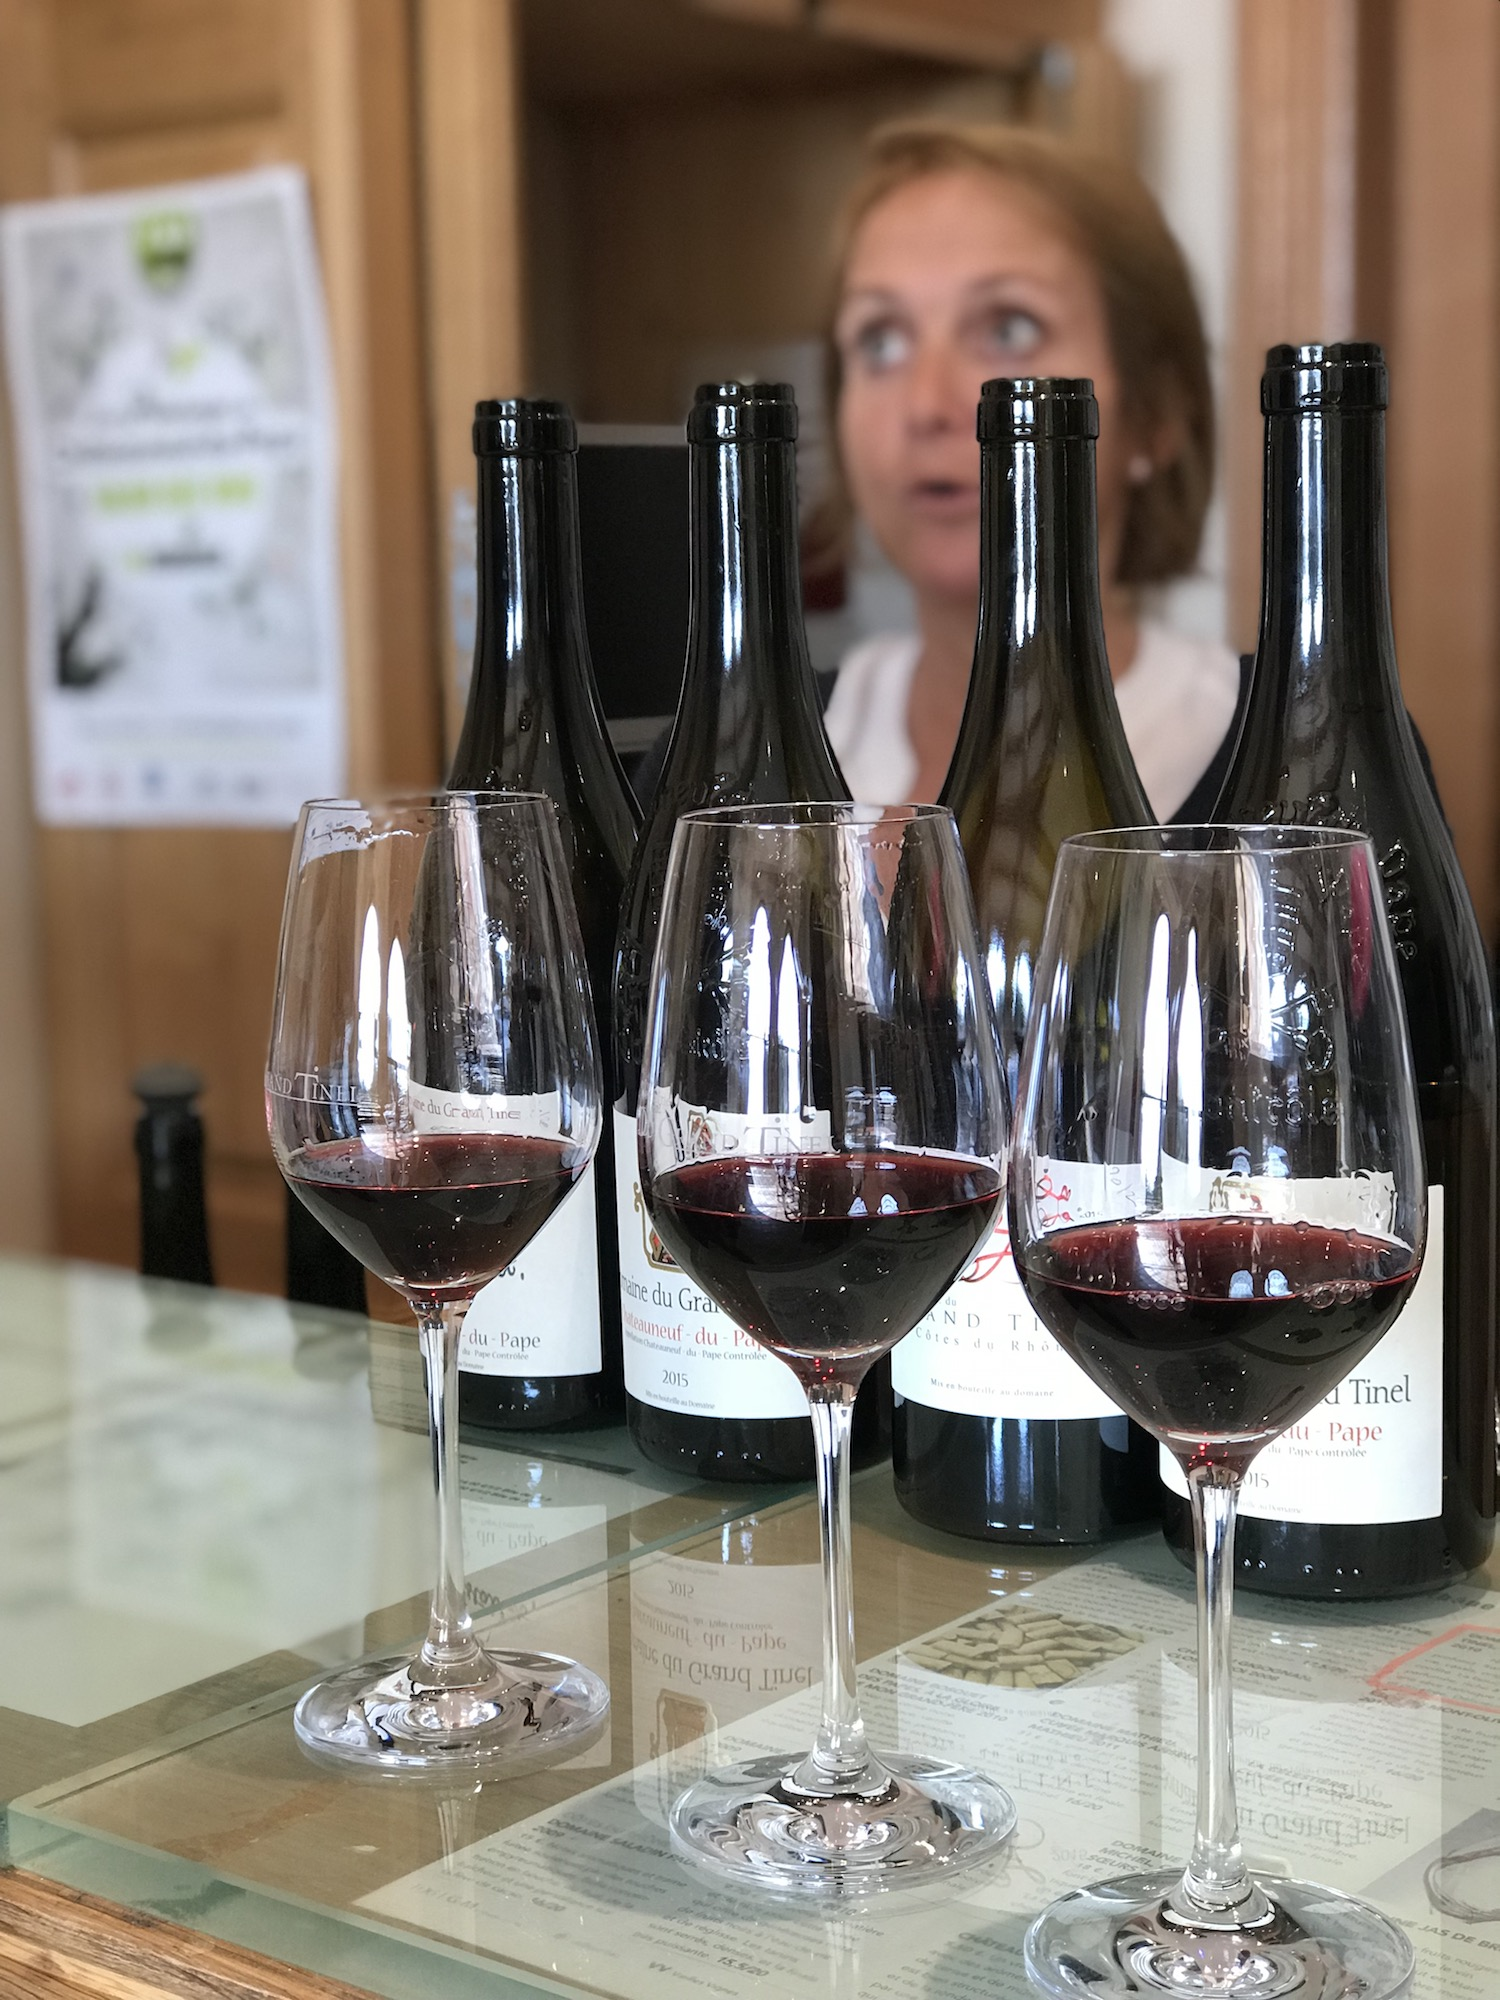 Comparing a range of Châteauneuf-du-Pape wines against one Côtes du Rhône. Tragically, most of this ends up in the spit bucket.